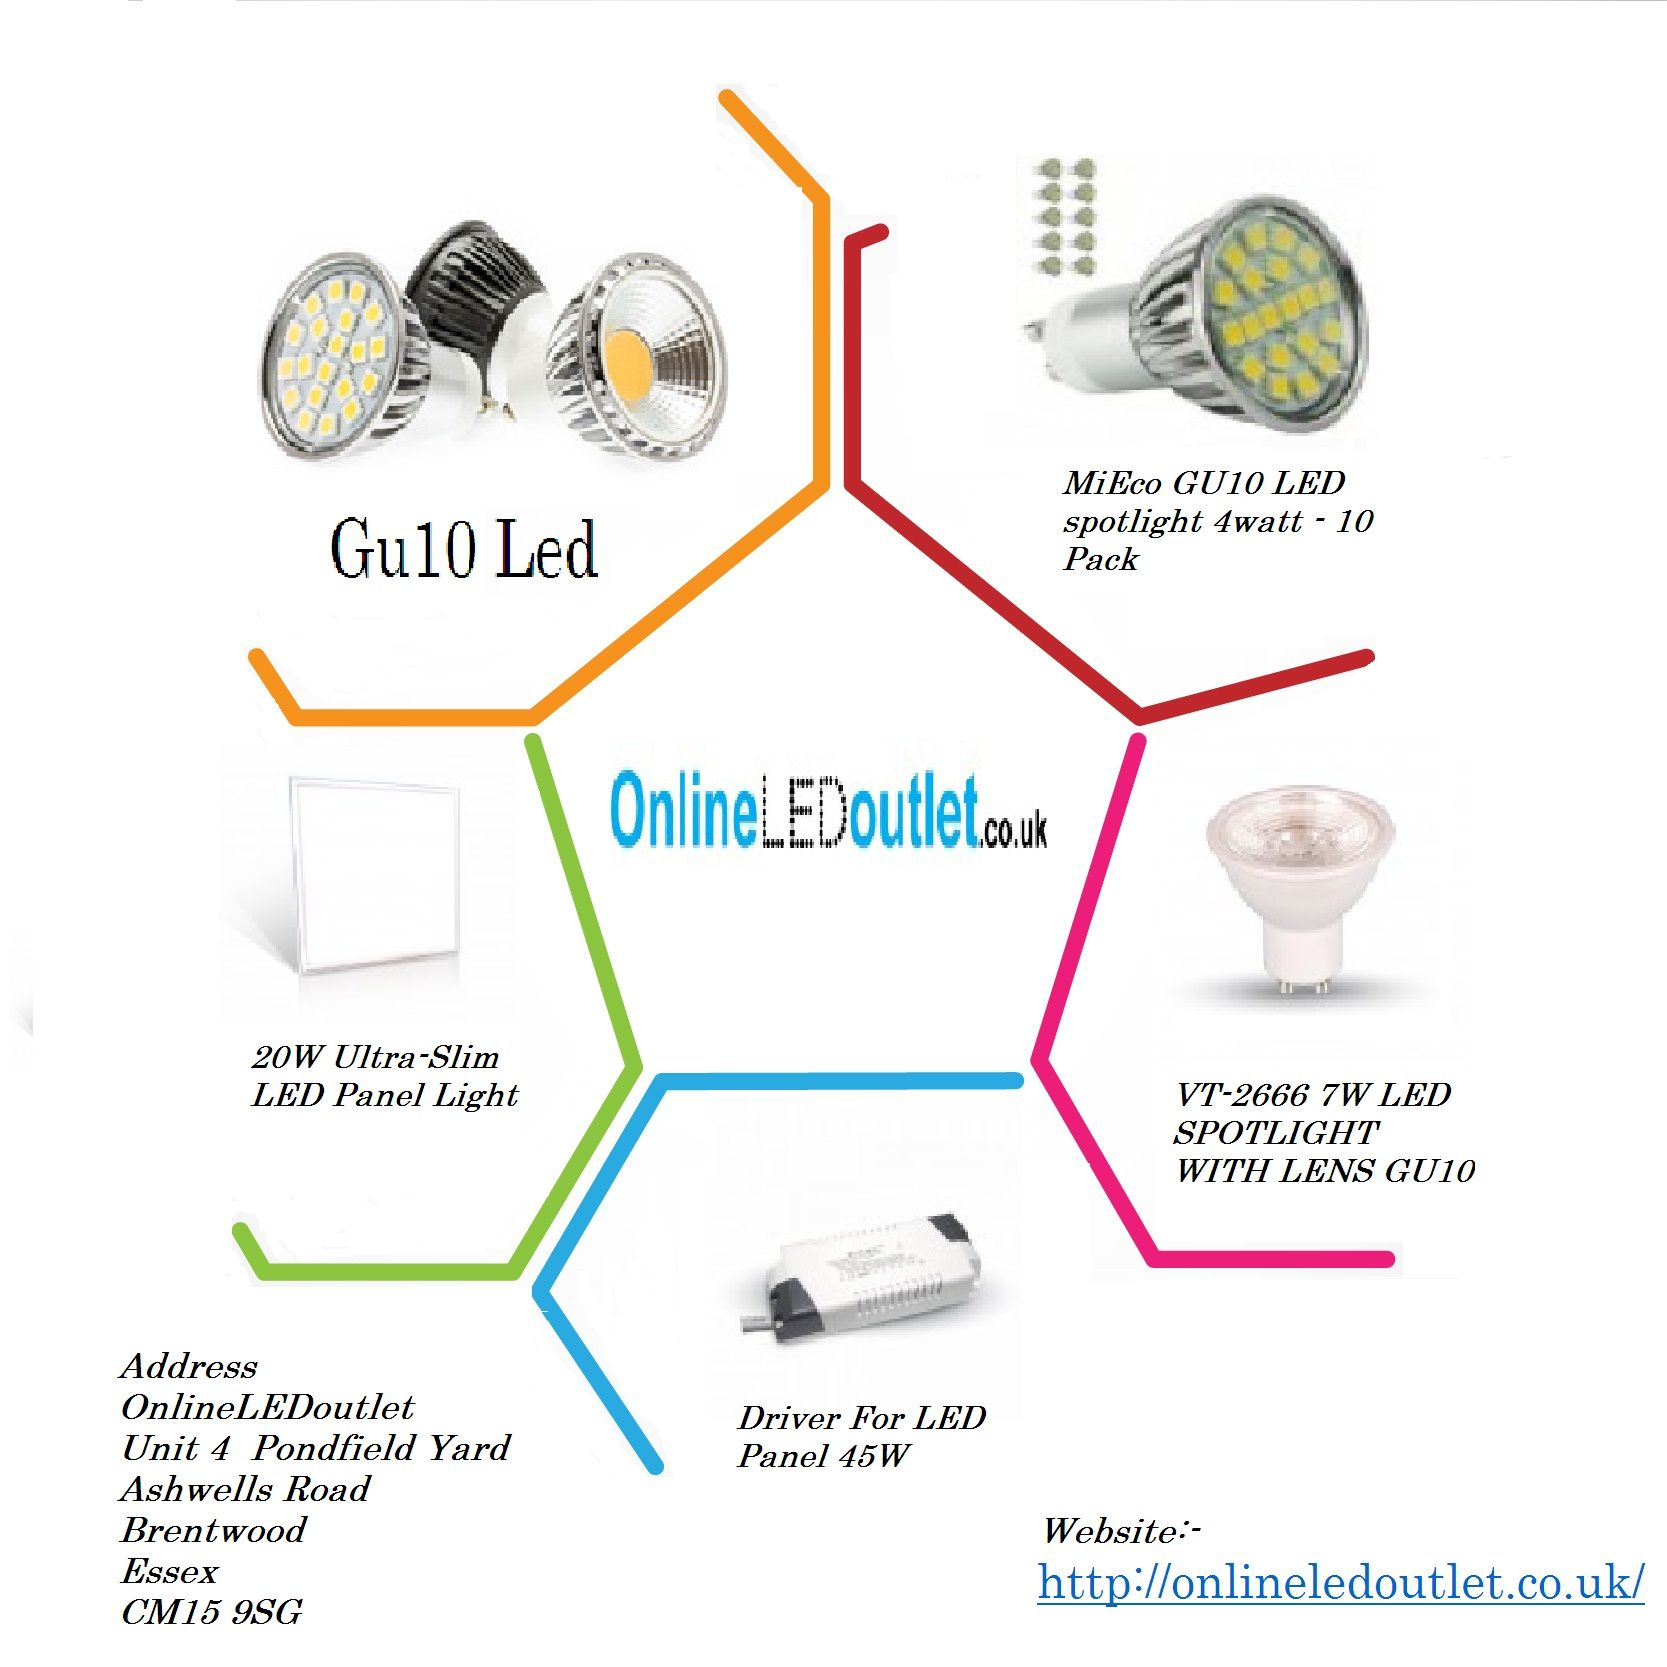 We Sell Quality LED bulbs; GU10, MR16,  Spotlight, Ceiling and LEDs online. Our guaranteed LED bulbs can reduce your lighting energy bills by up to 90%.For more visit http://onlineledoutlet.co.uk/